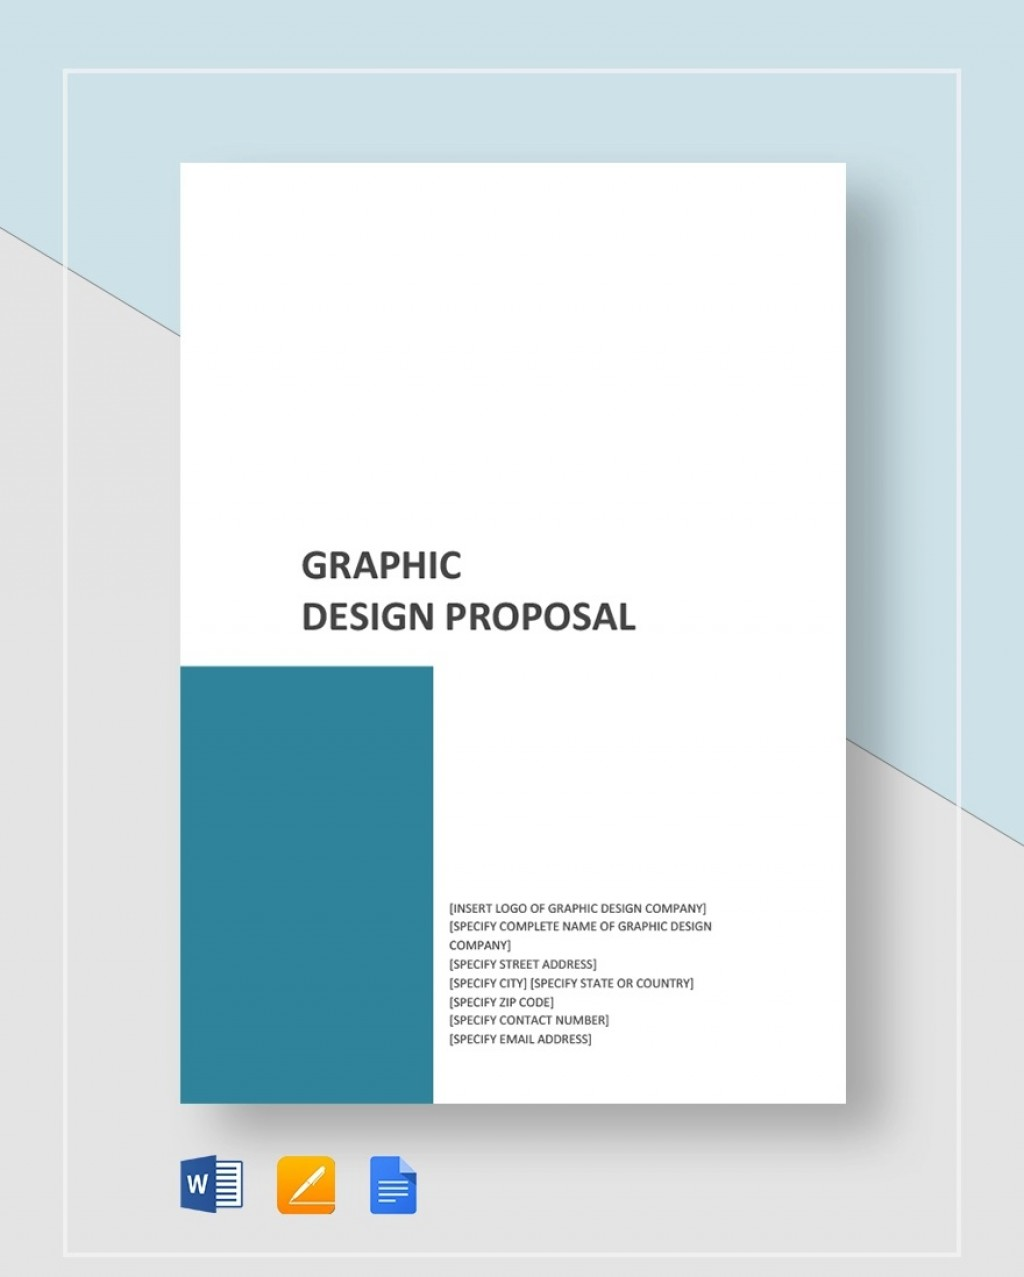 Template Graphic Design Proposal Idea  Free Doc PdfLarge